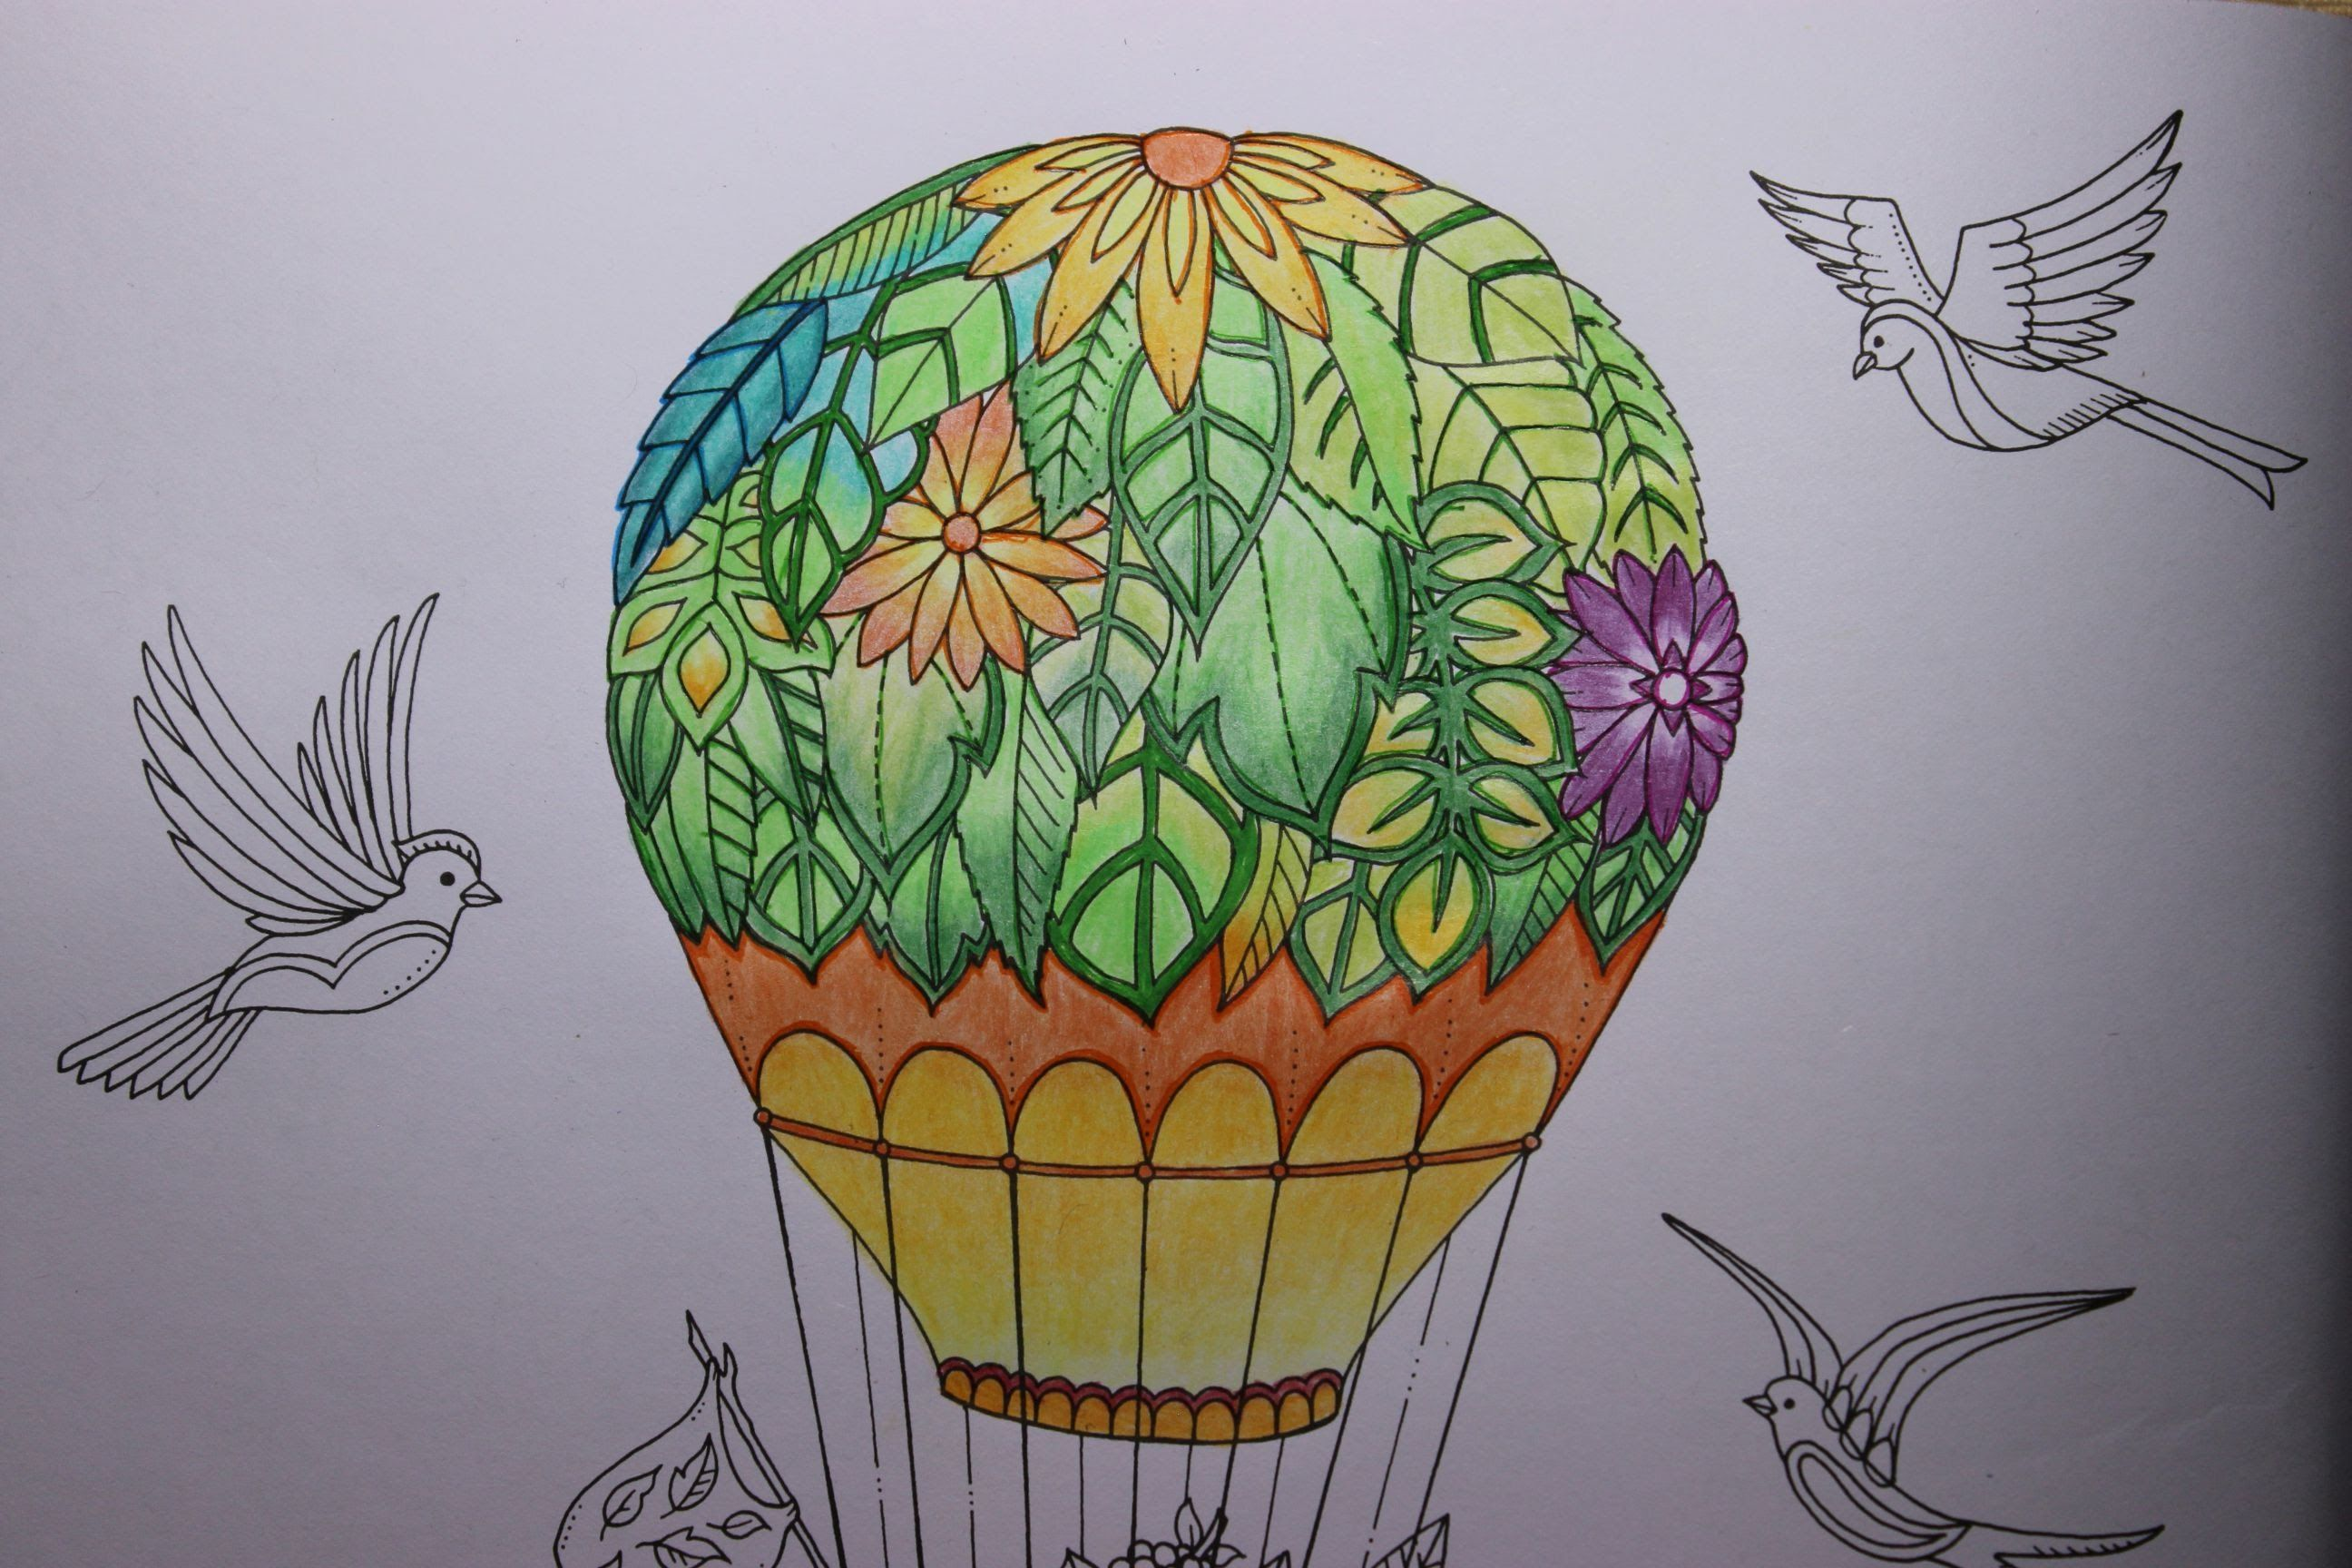 Enchanted Forest Coloring Book Air Balloon Part 1 Forest Coloring Book Enchanted Forest Coloring Book Enchanted Forest Coloring